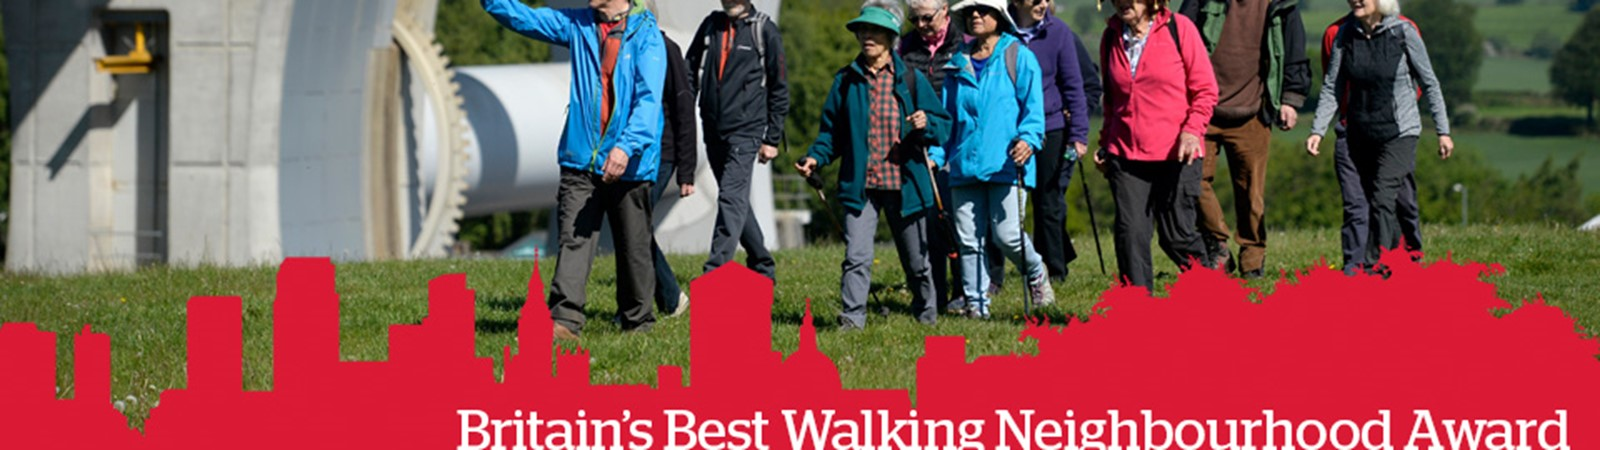 Falkirk UK's best walking neighbourhood